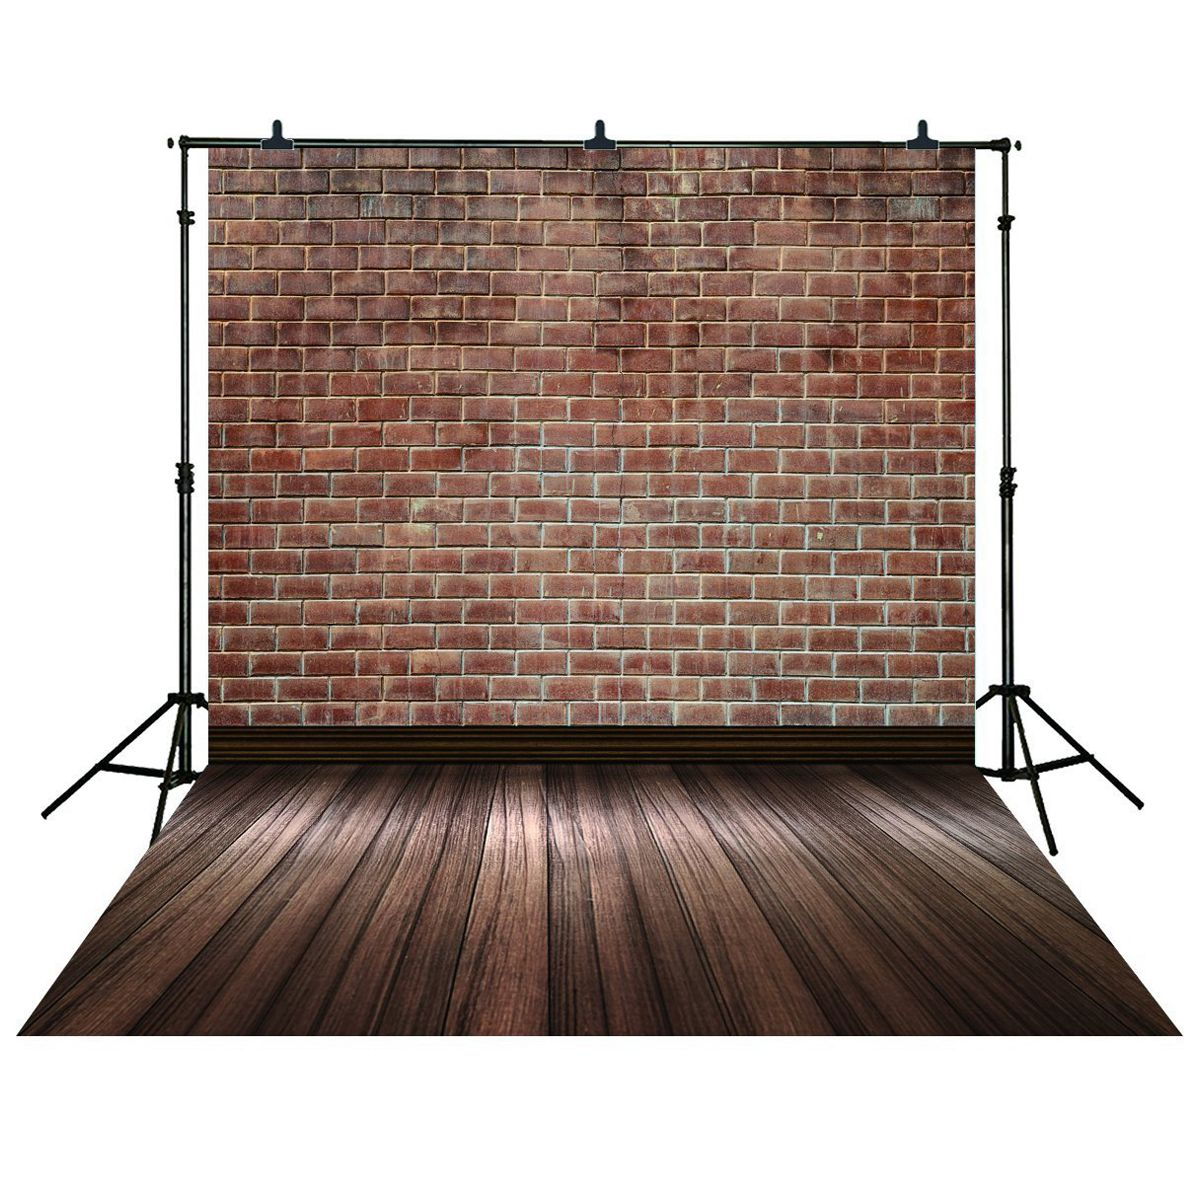 Top Deals 3x5ft Vinyl Photography Backdrop Retro Brick Wall Wooden Floor Vintage Background Photo Studio Shooting Photocall retro background brick wall photo studio vintage photography backdrops chinese style photo props vinyl 5x7ft or 3x5ft jiegq210